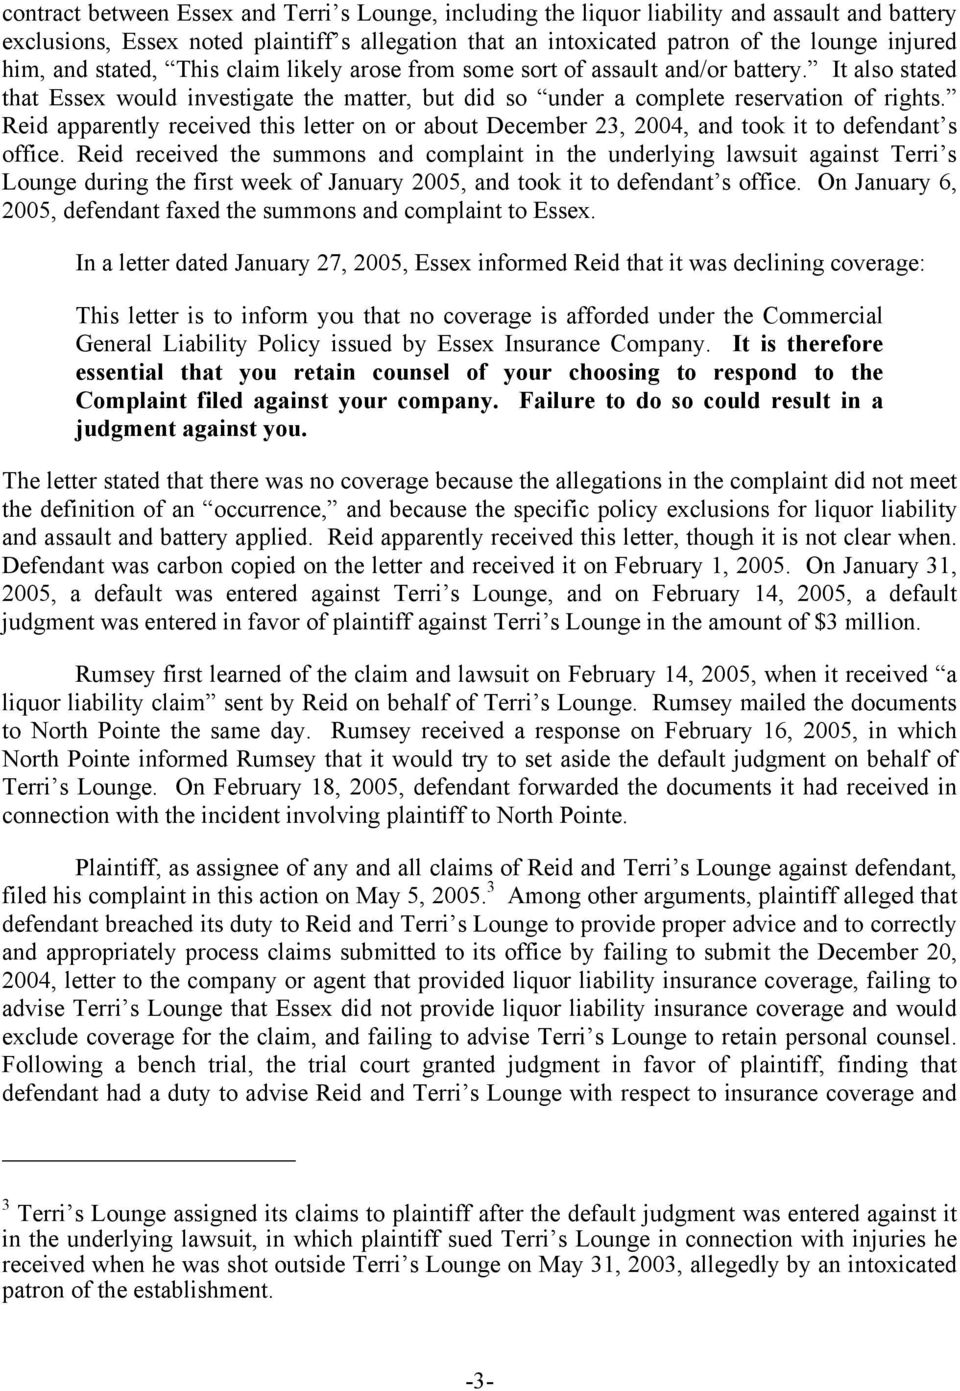 Reid apparently received this letter on or about December 23, 2004, and took it to defendant s office.